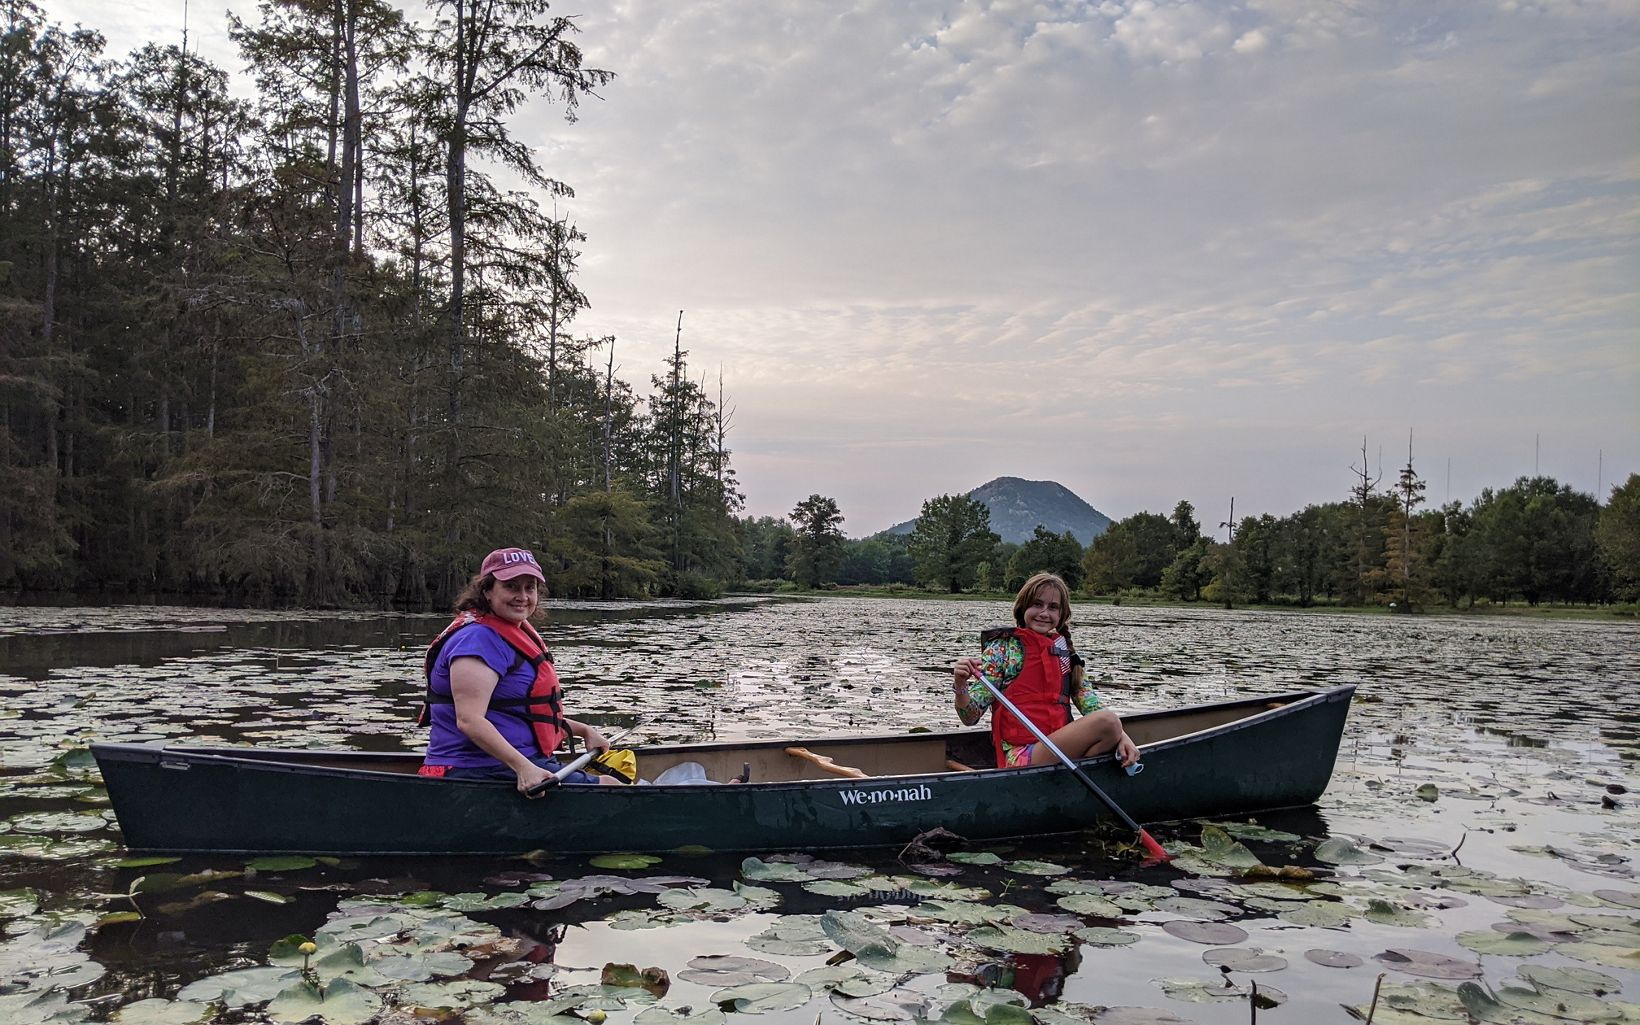 A woman and a little girl in a canoe.